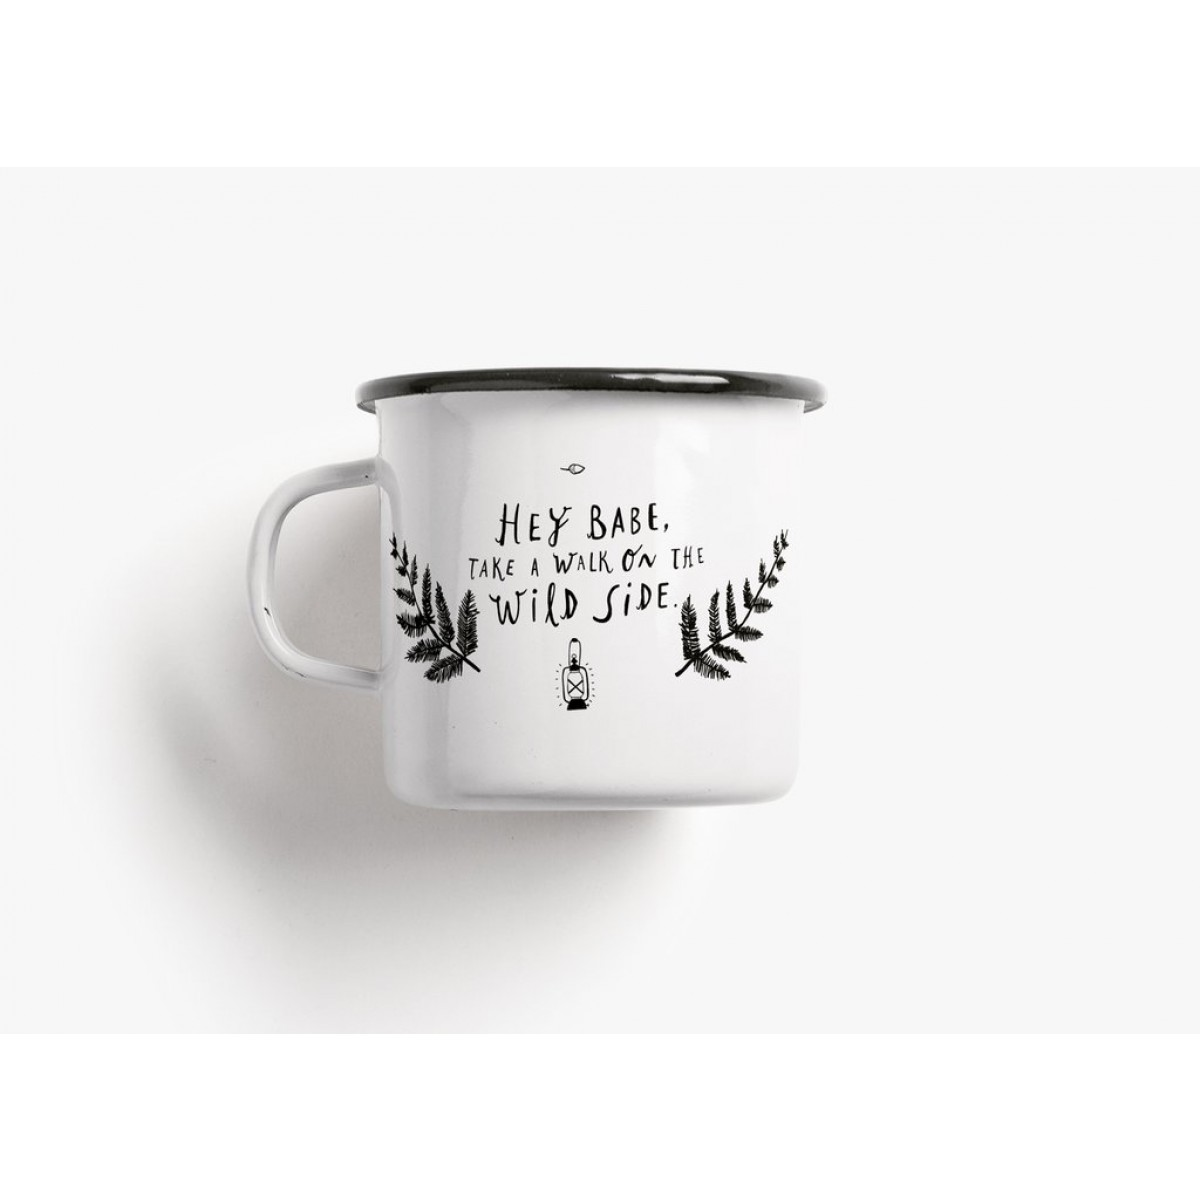 typealive / Emaillebecher Tasse / Wild Side